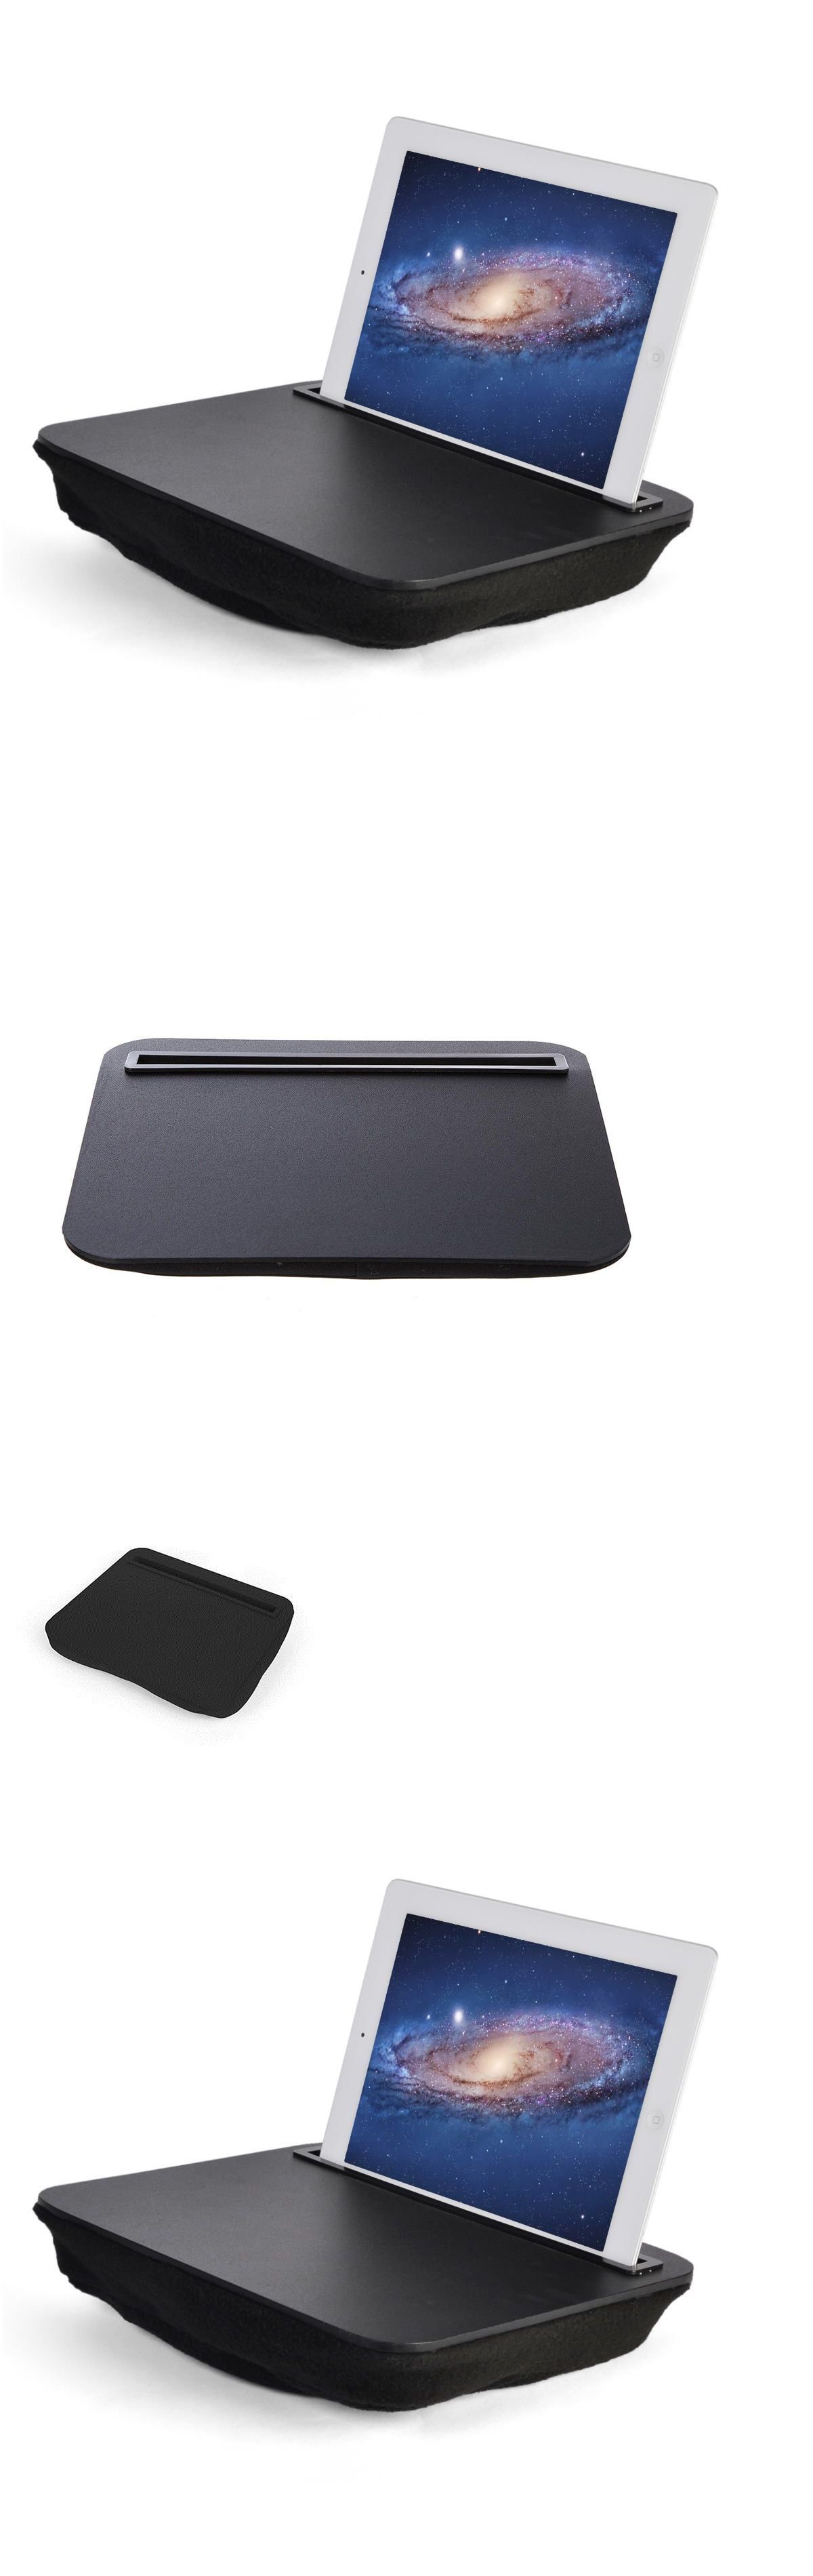 iTray Lap Desk iBed Black iPad Universal Tablet eReader Microbead Cushion Stand